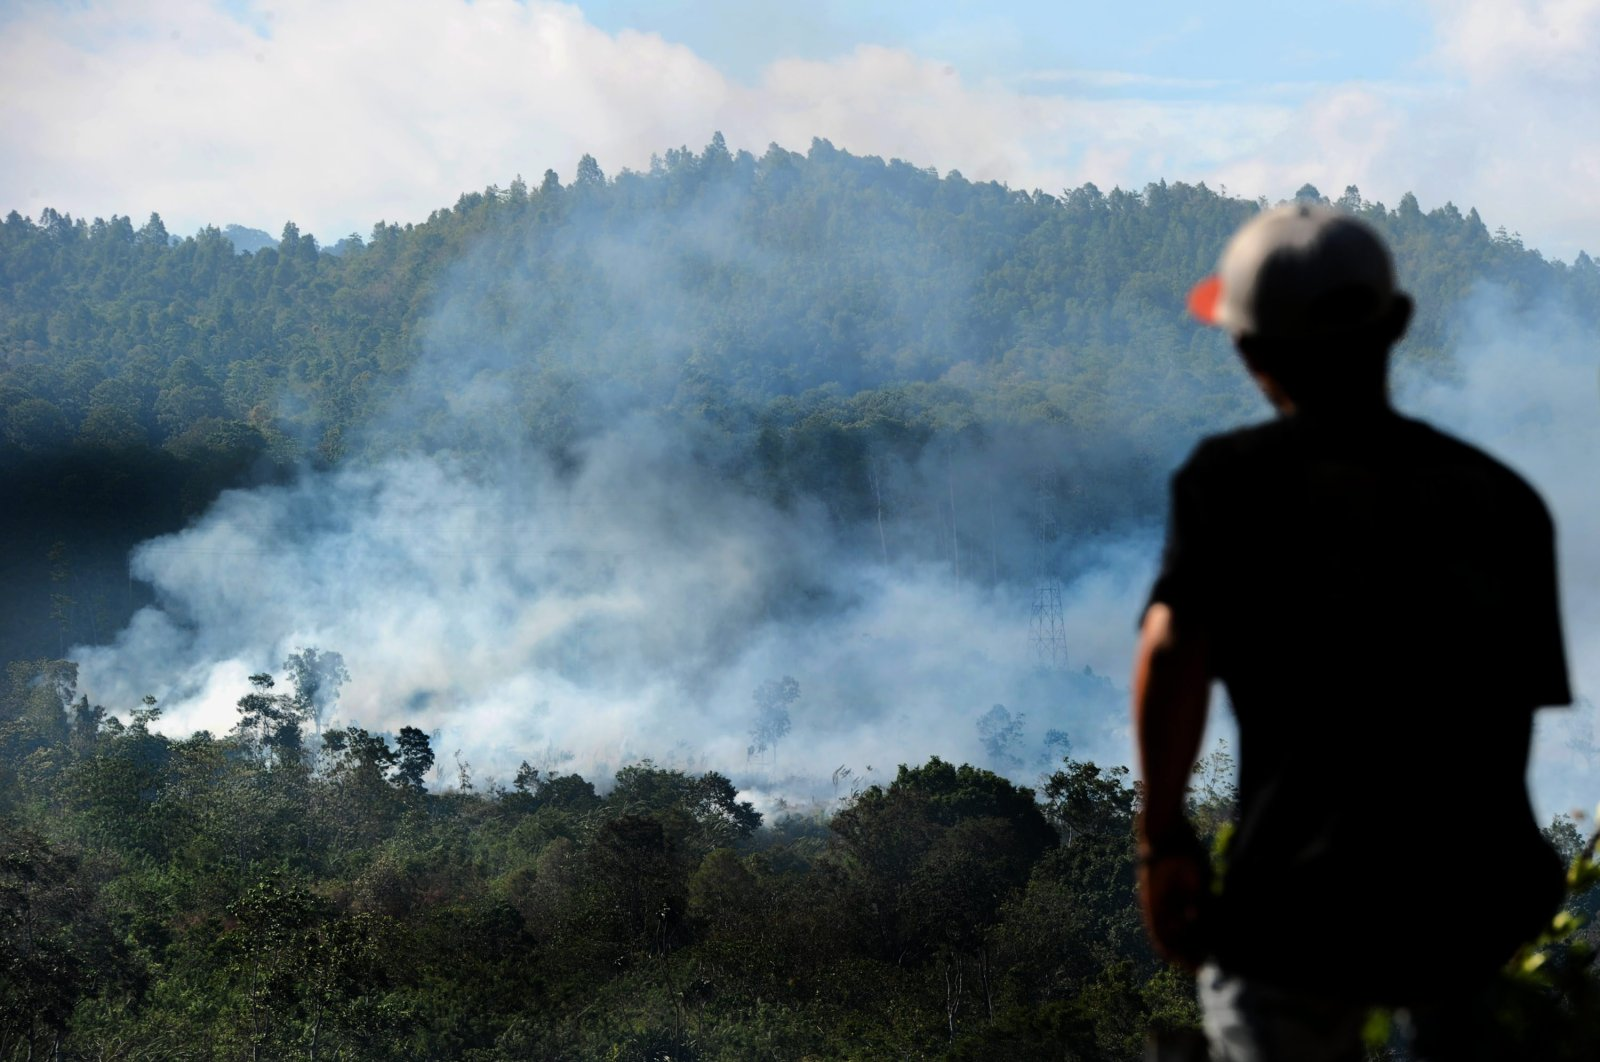 Indonesian rangers extinguish a fire in Seulawah in Aceh Province after the fire scorched hectares of pine trees, Oct. 10, 2016. (AFP Photo)